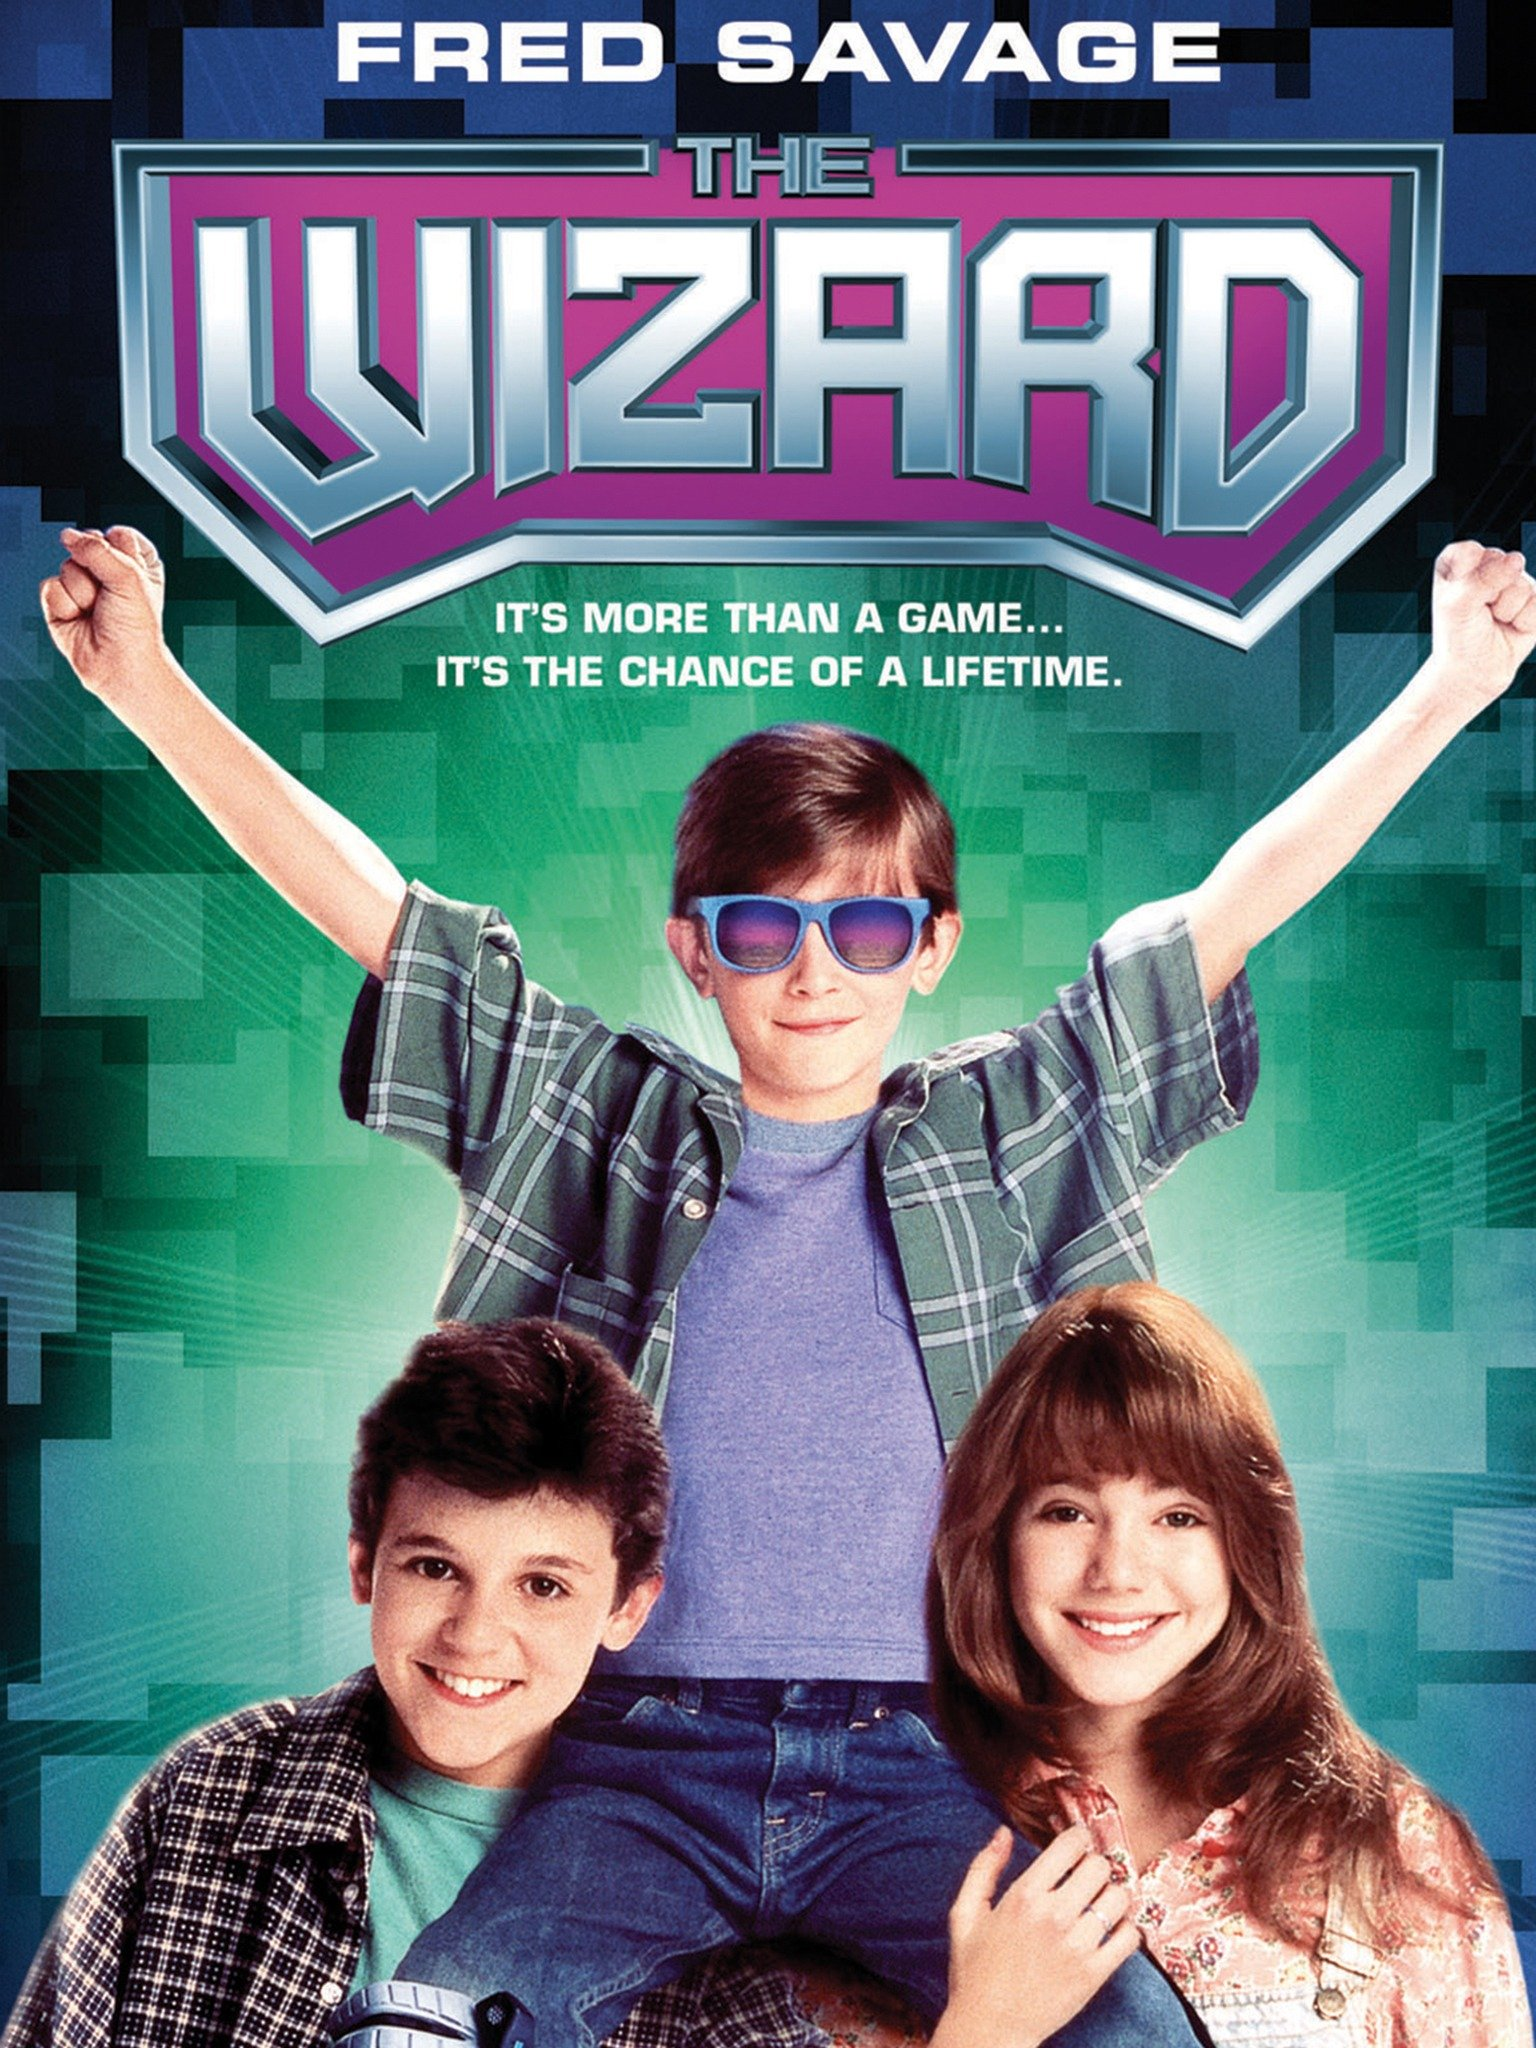 The Wizard 1989 Rotten Tomatoes